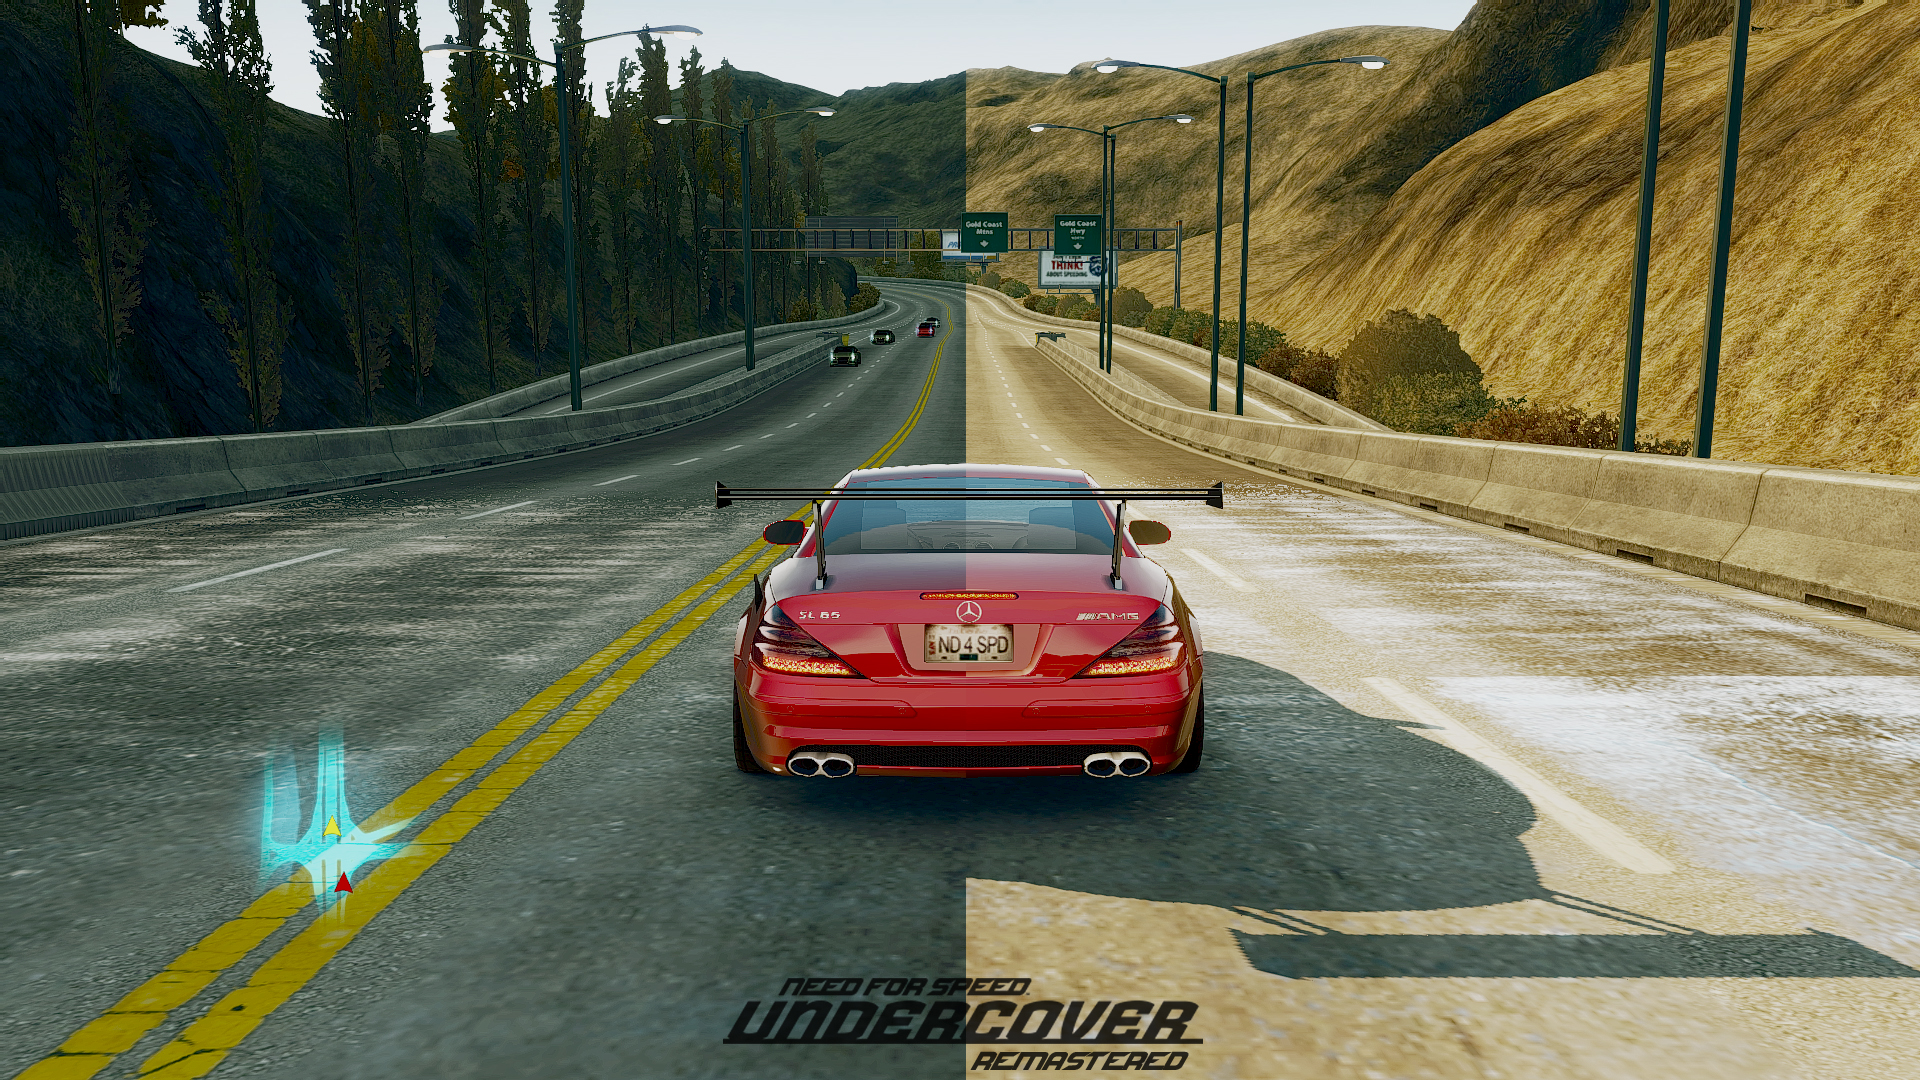 nfs undercover remastered doublepatch file mod db. Black Bedroom Furniture Sets. Home Design Ideas